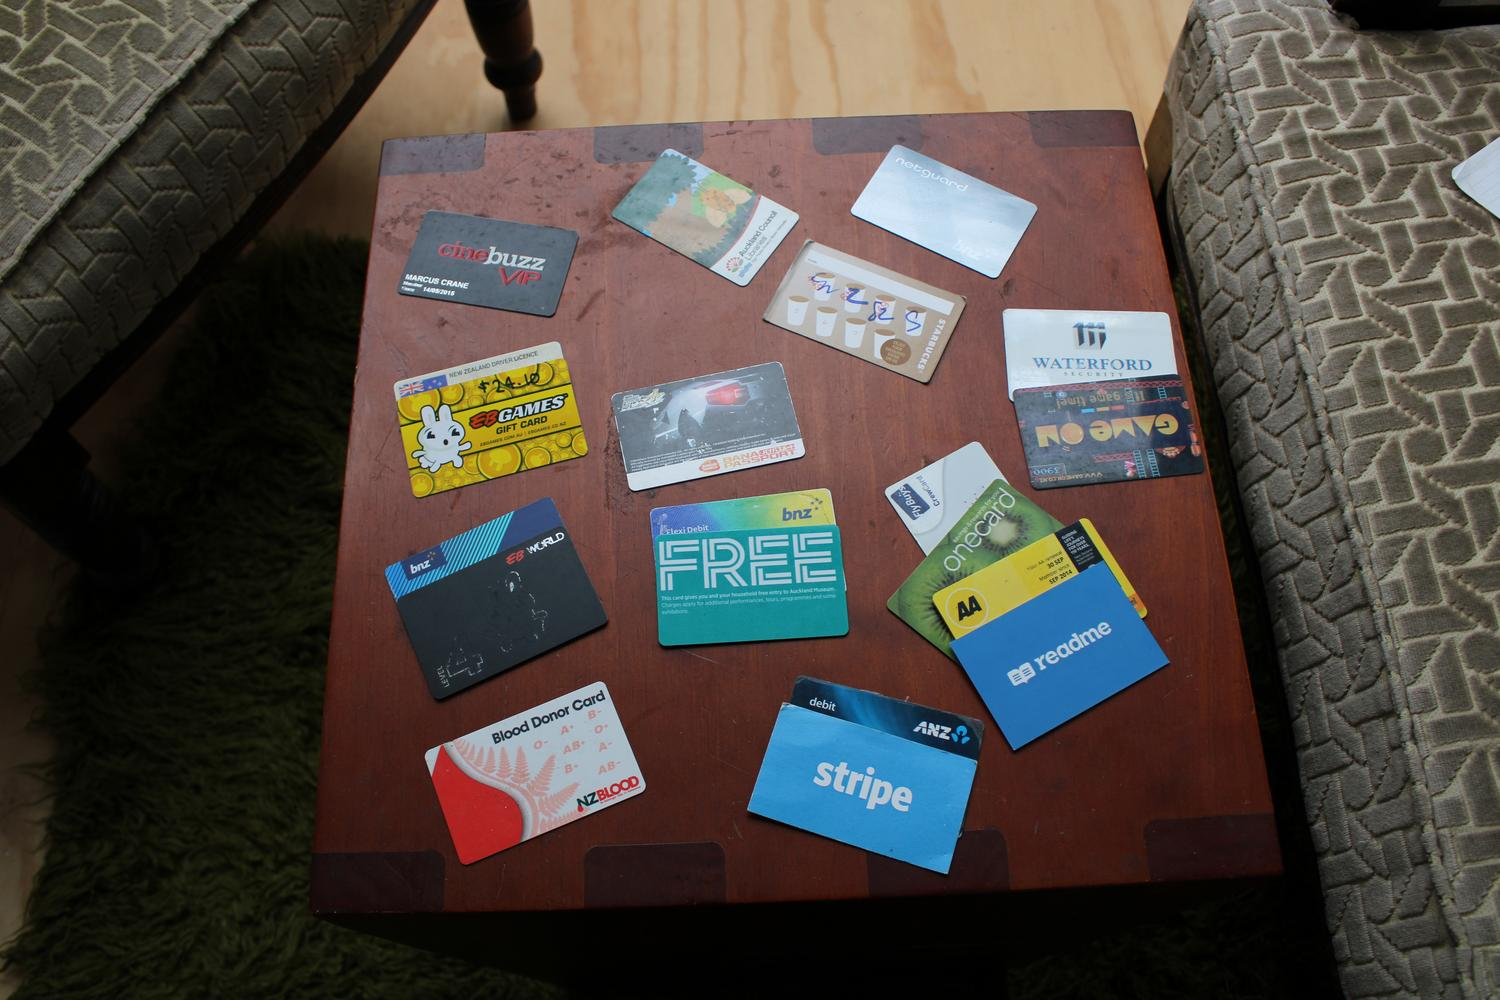 An aerial photo of a table with numerous cards scattered around. There are different types from loyalty cards to business cards, as described below.